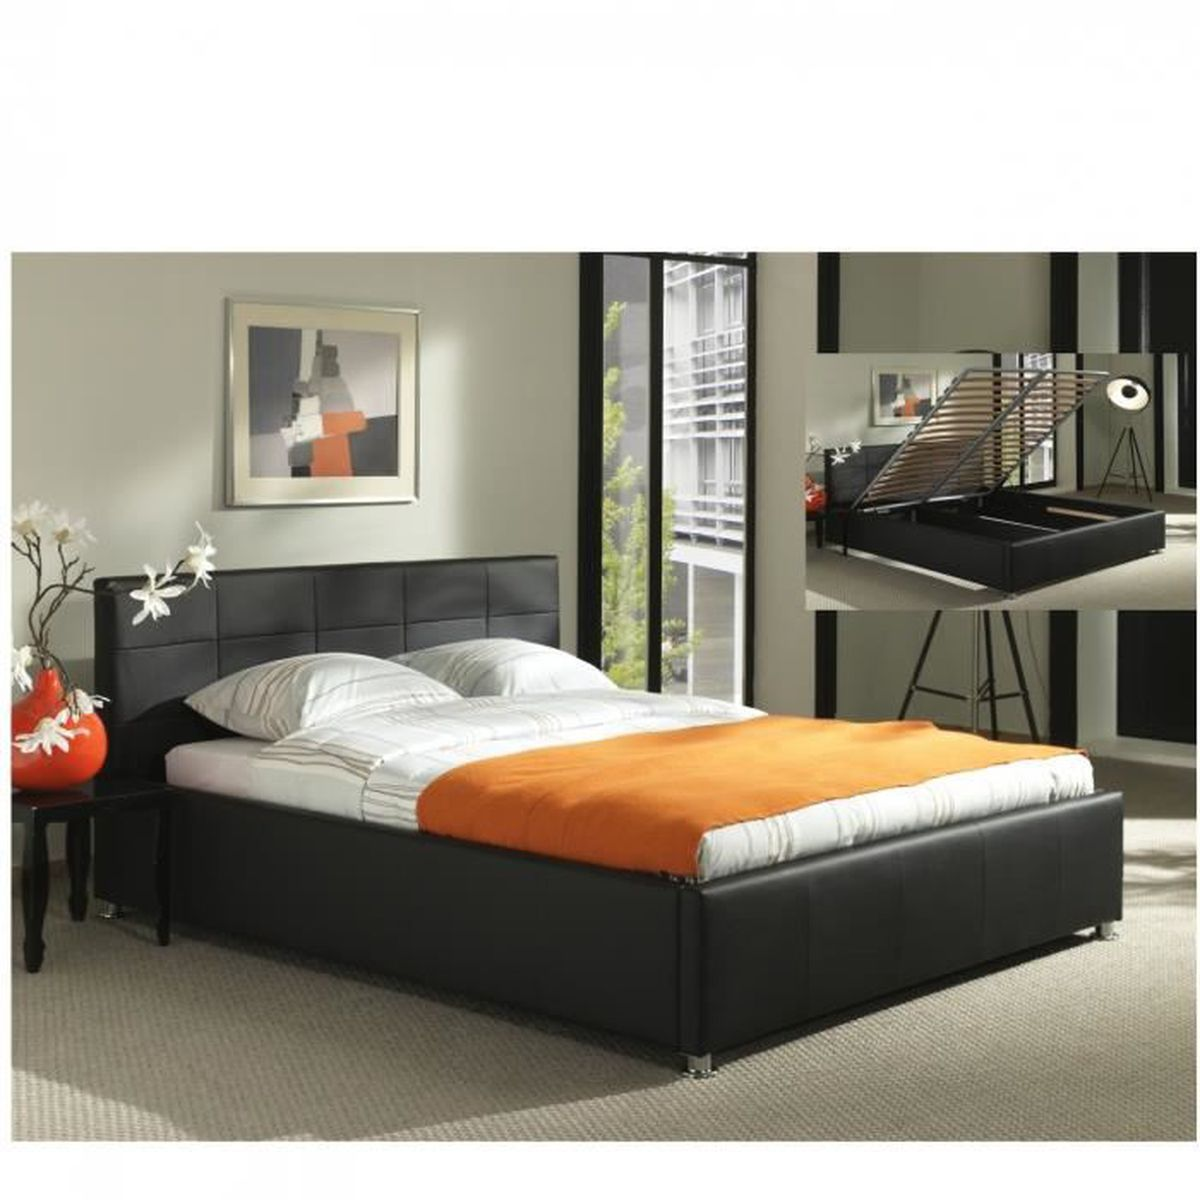 lit coffre noir sommier relevable 160x200 cm camilia achat vente lit evolutif lit coffre. Black Bedroom Furniture Sets. Home Design Ideas